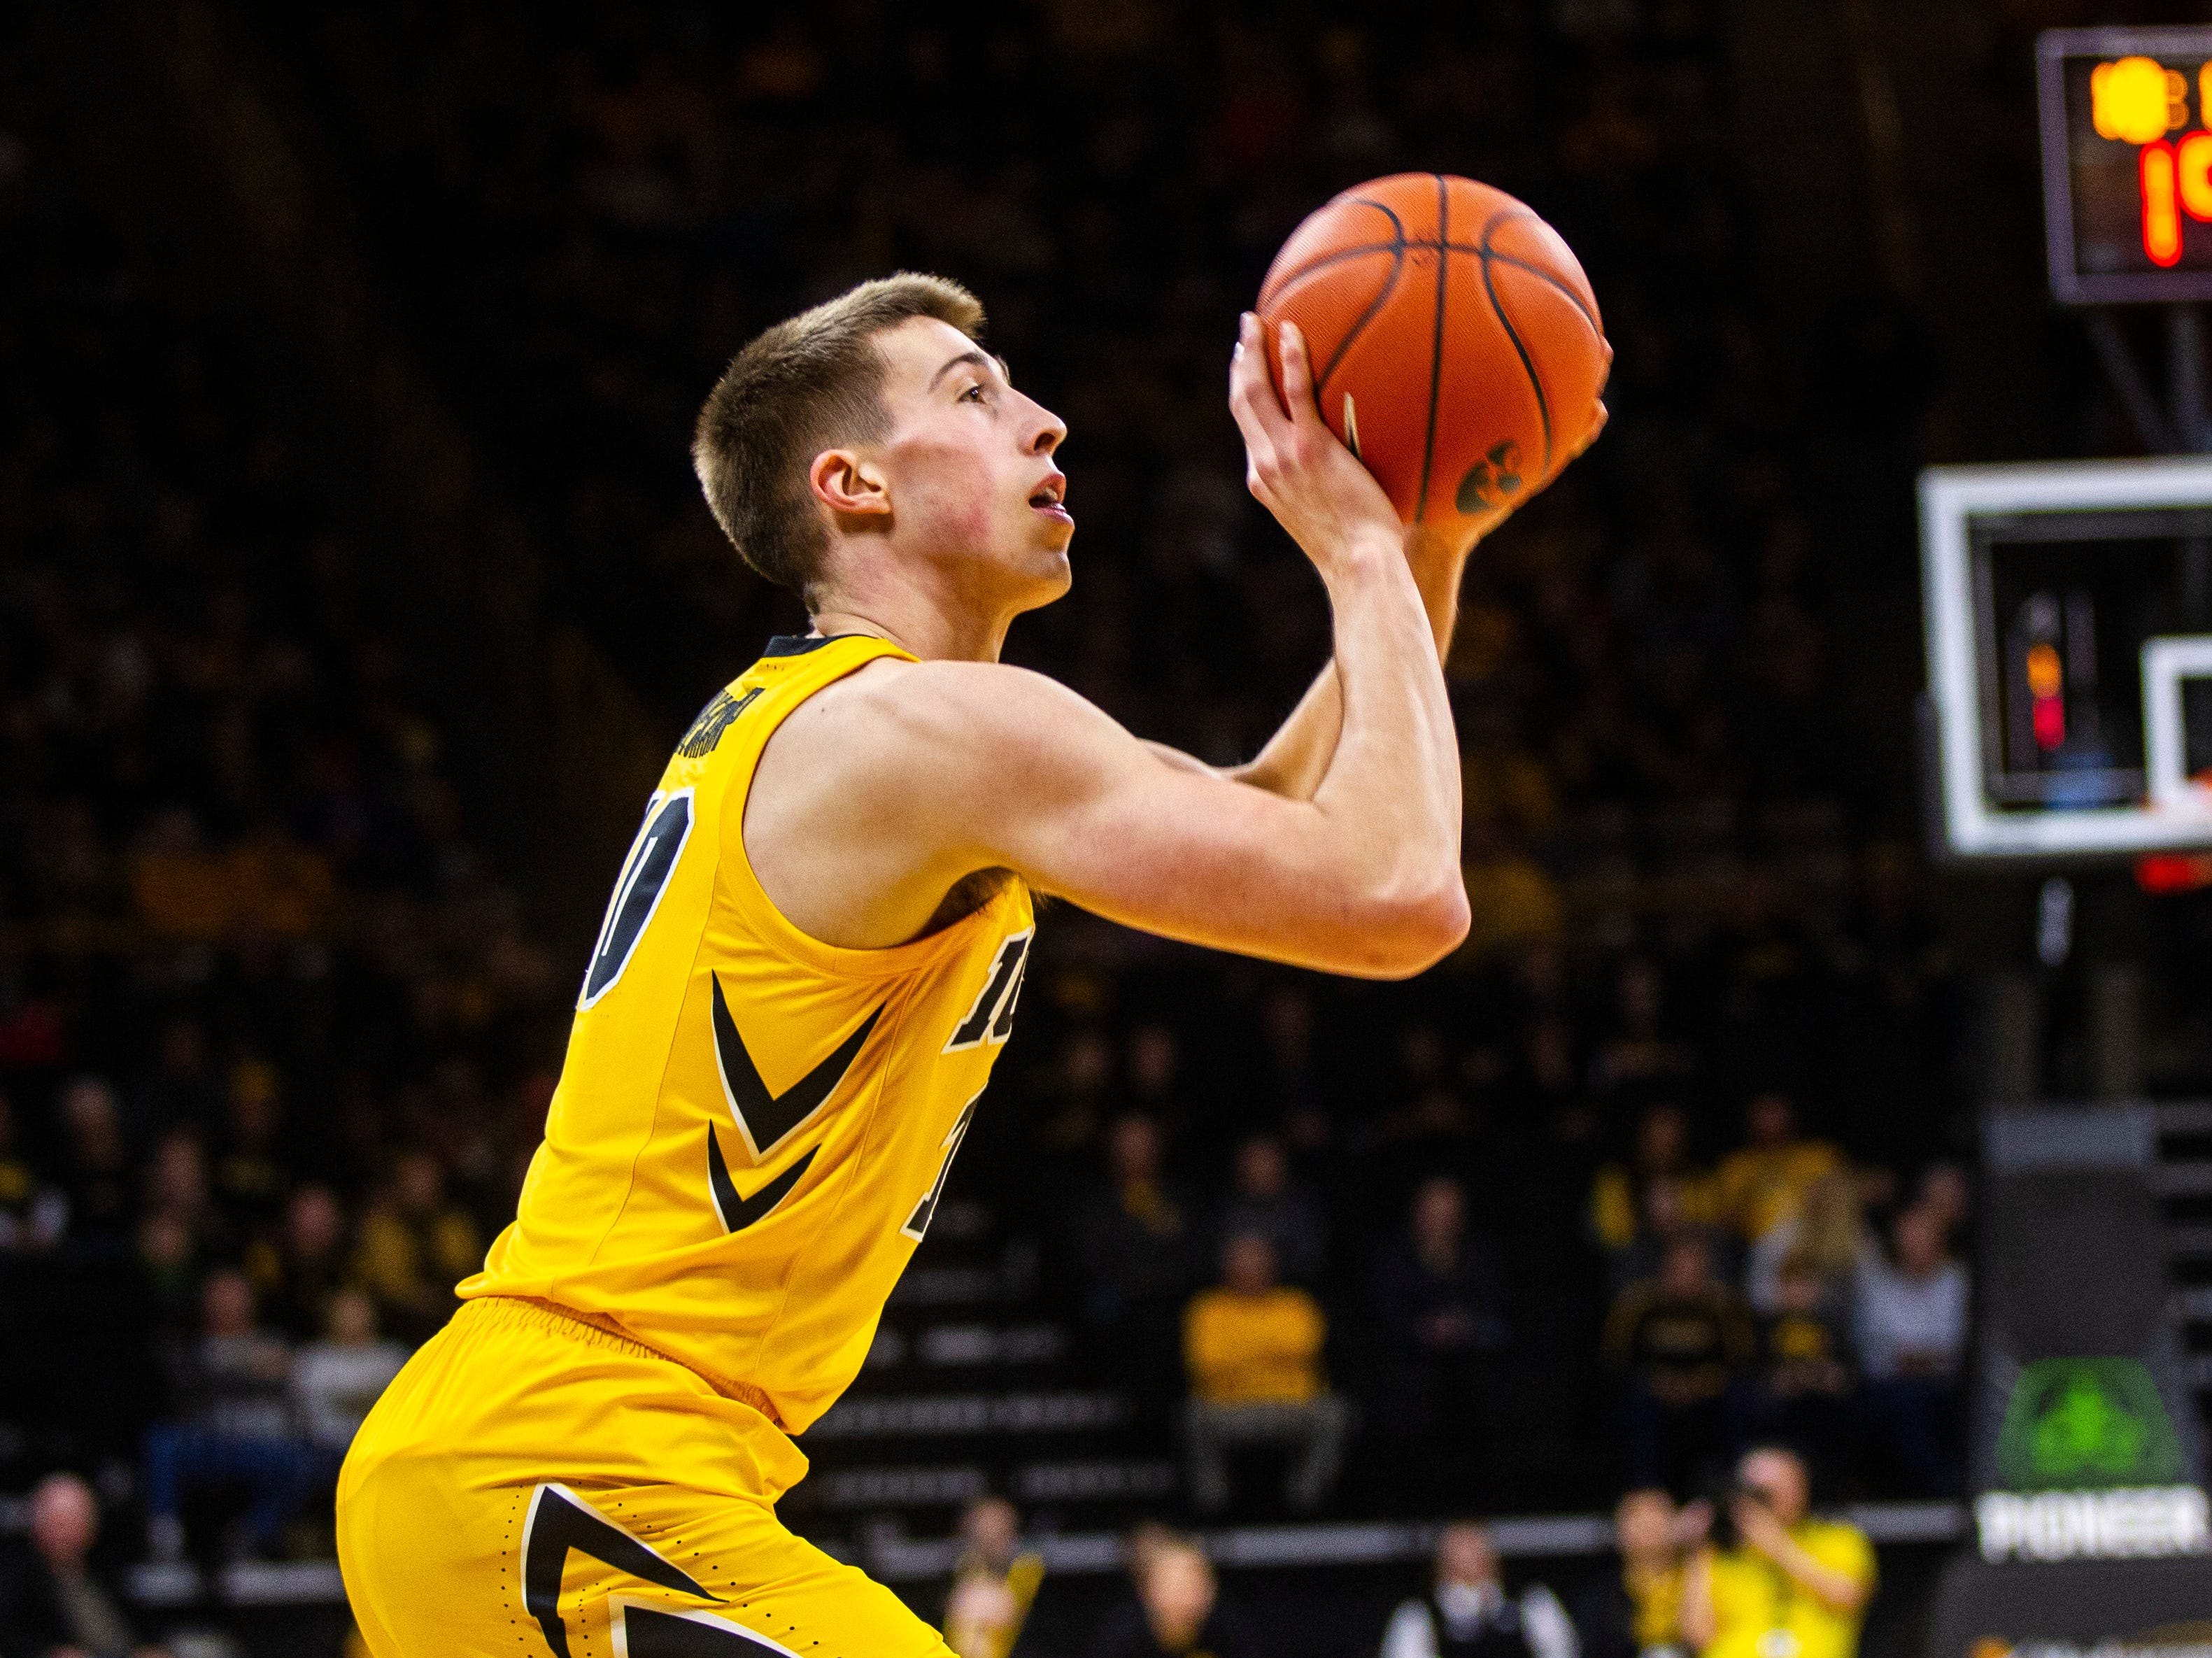 Iowa guard Joe Wieskamp (10) attempts a 3-point basket during a NCAA men's basketball game on Saturday, Dec. 22, 2018, at Carver-Hawkeye Arena in Iowa City.